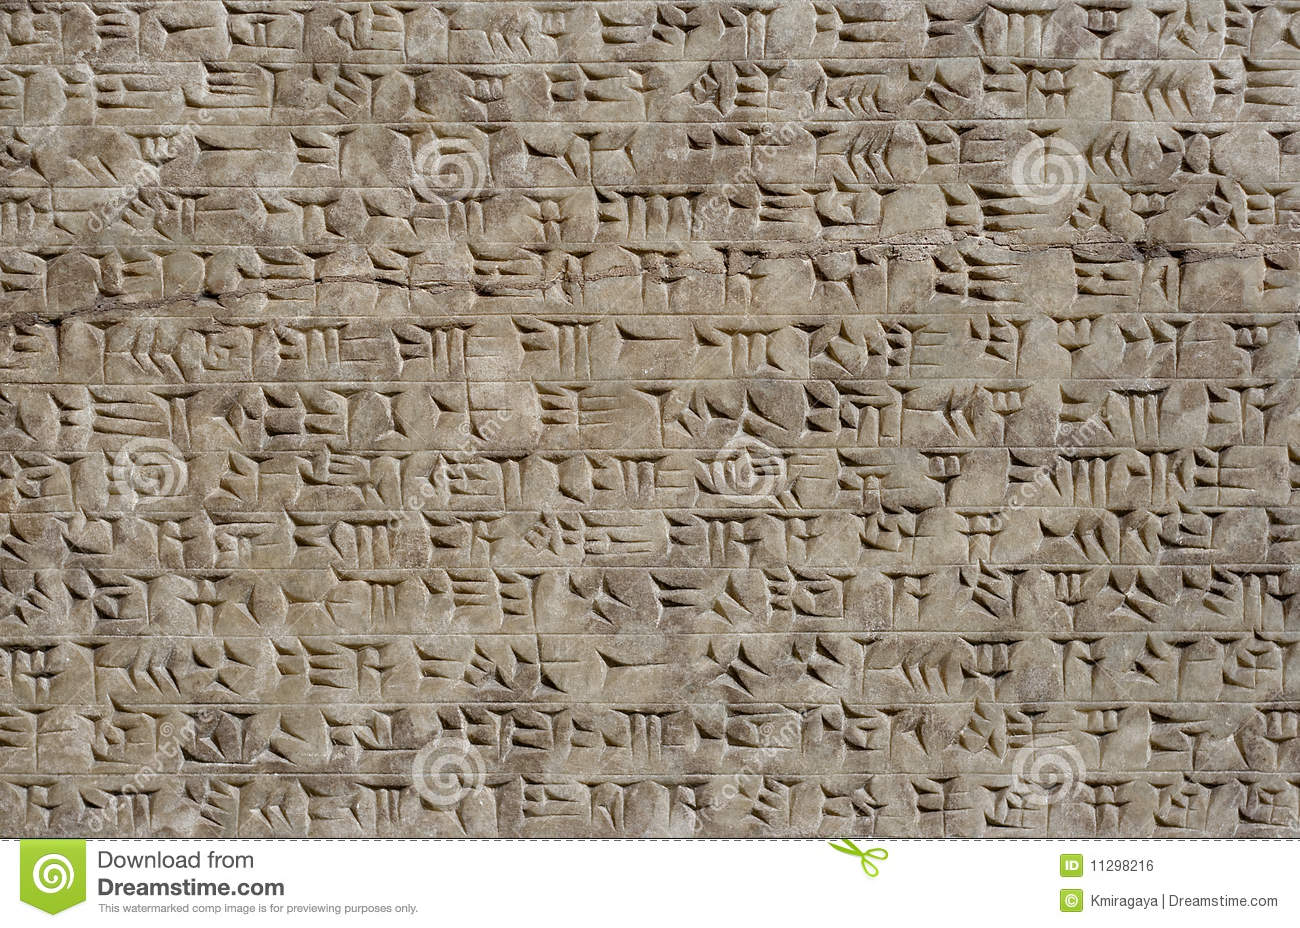 the characteristics of cuneiform writing in ancient sumer The ancient sumerian writing system is known as cuneiform from the latin cuneus (wedge ), because the symbols are wedge-shaped, and marked into clay tablets with.